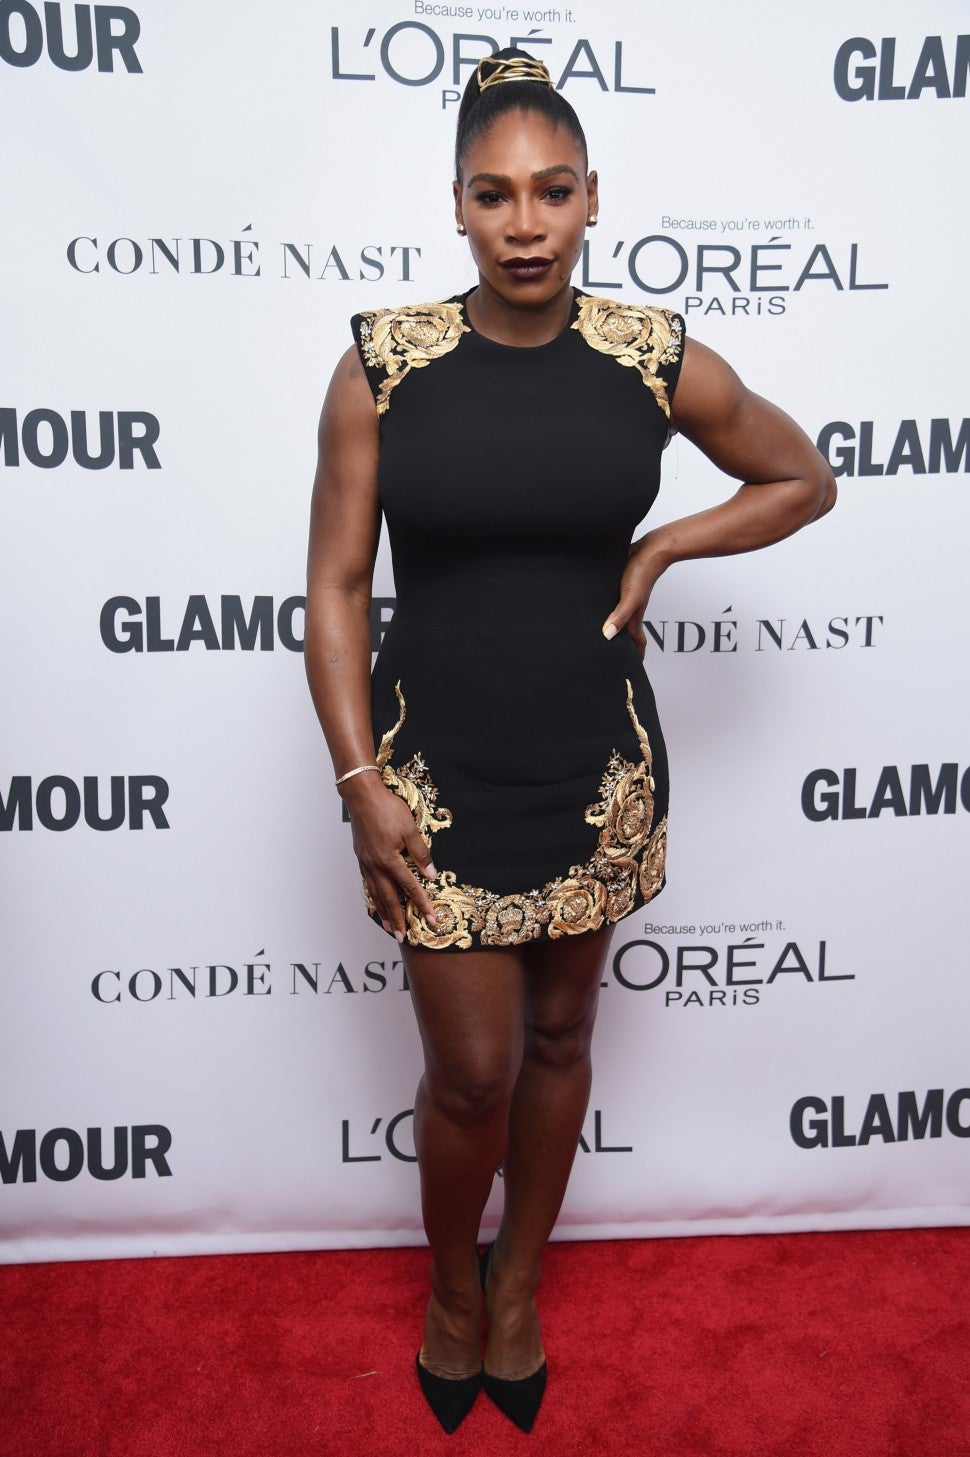 Serena Williams at 2017 Glamour Women of the Year awards